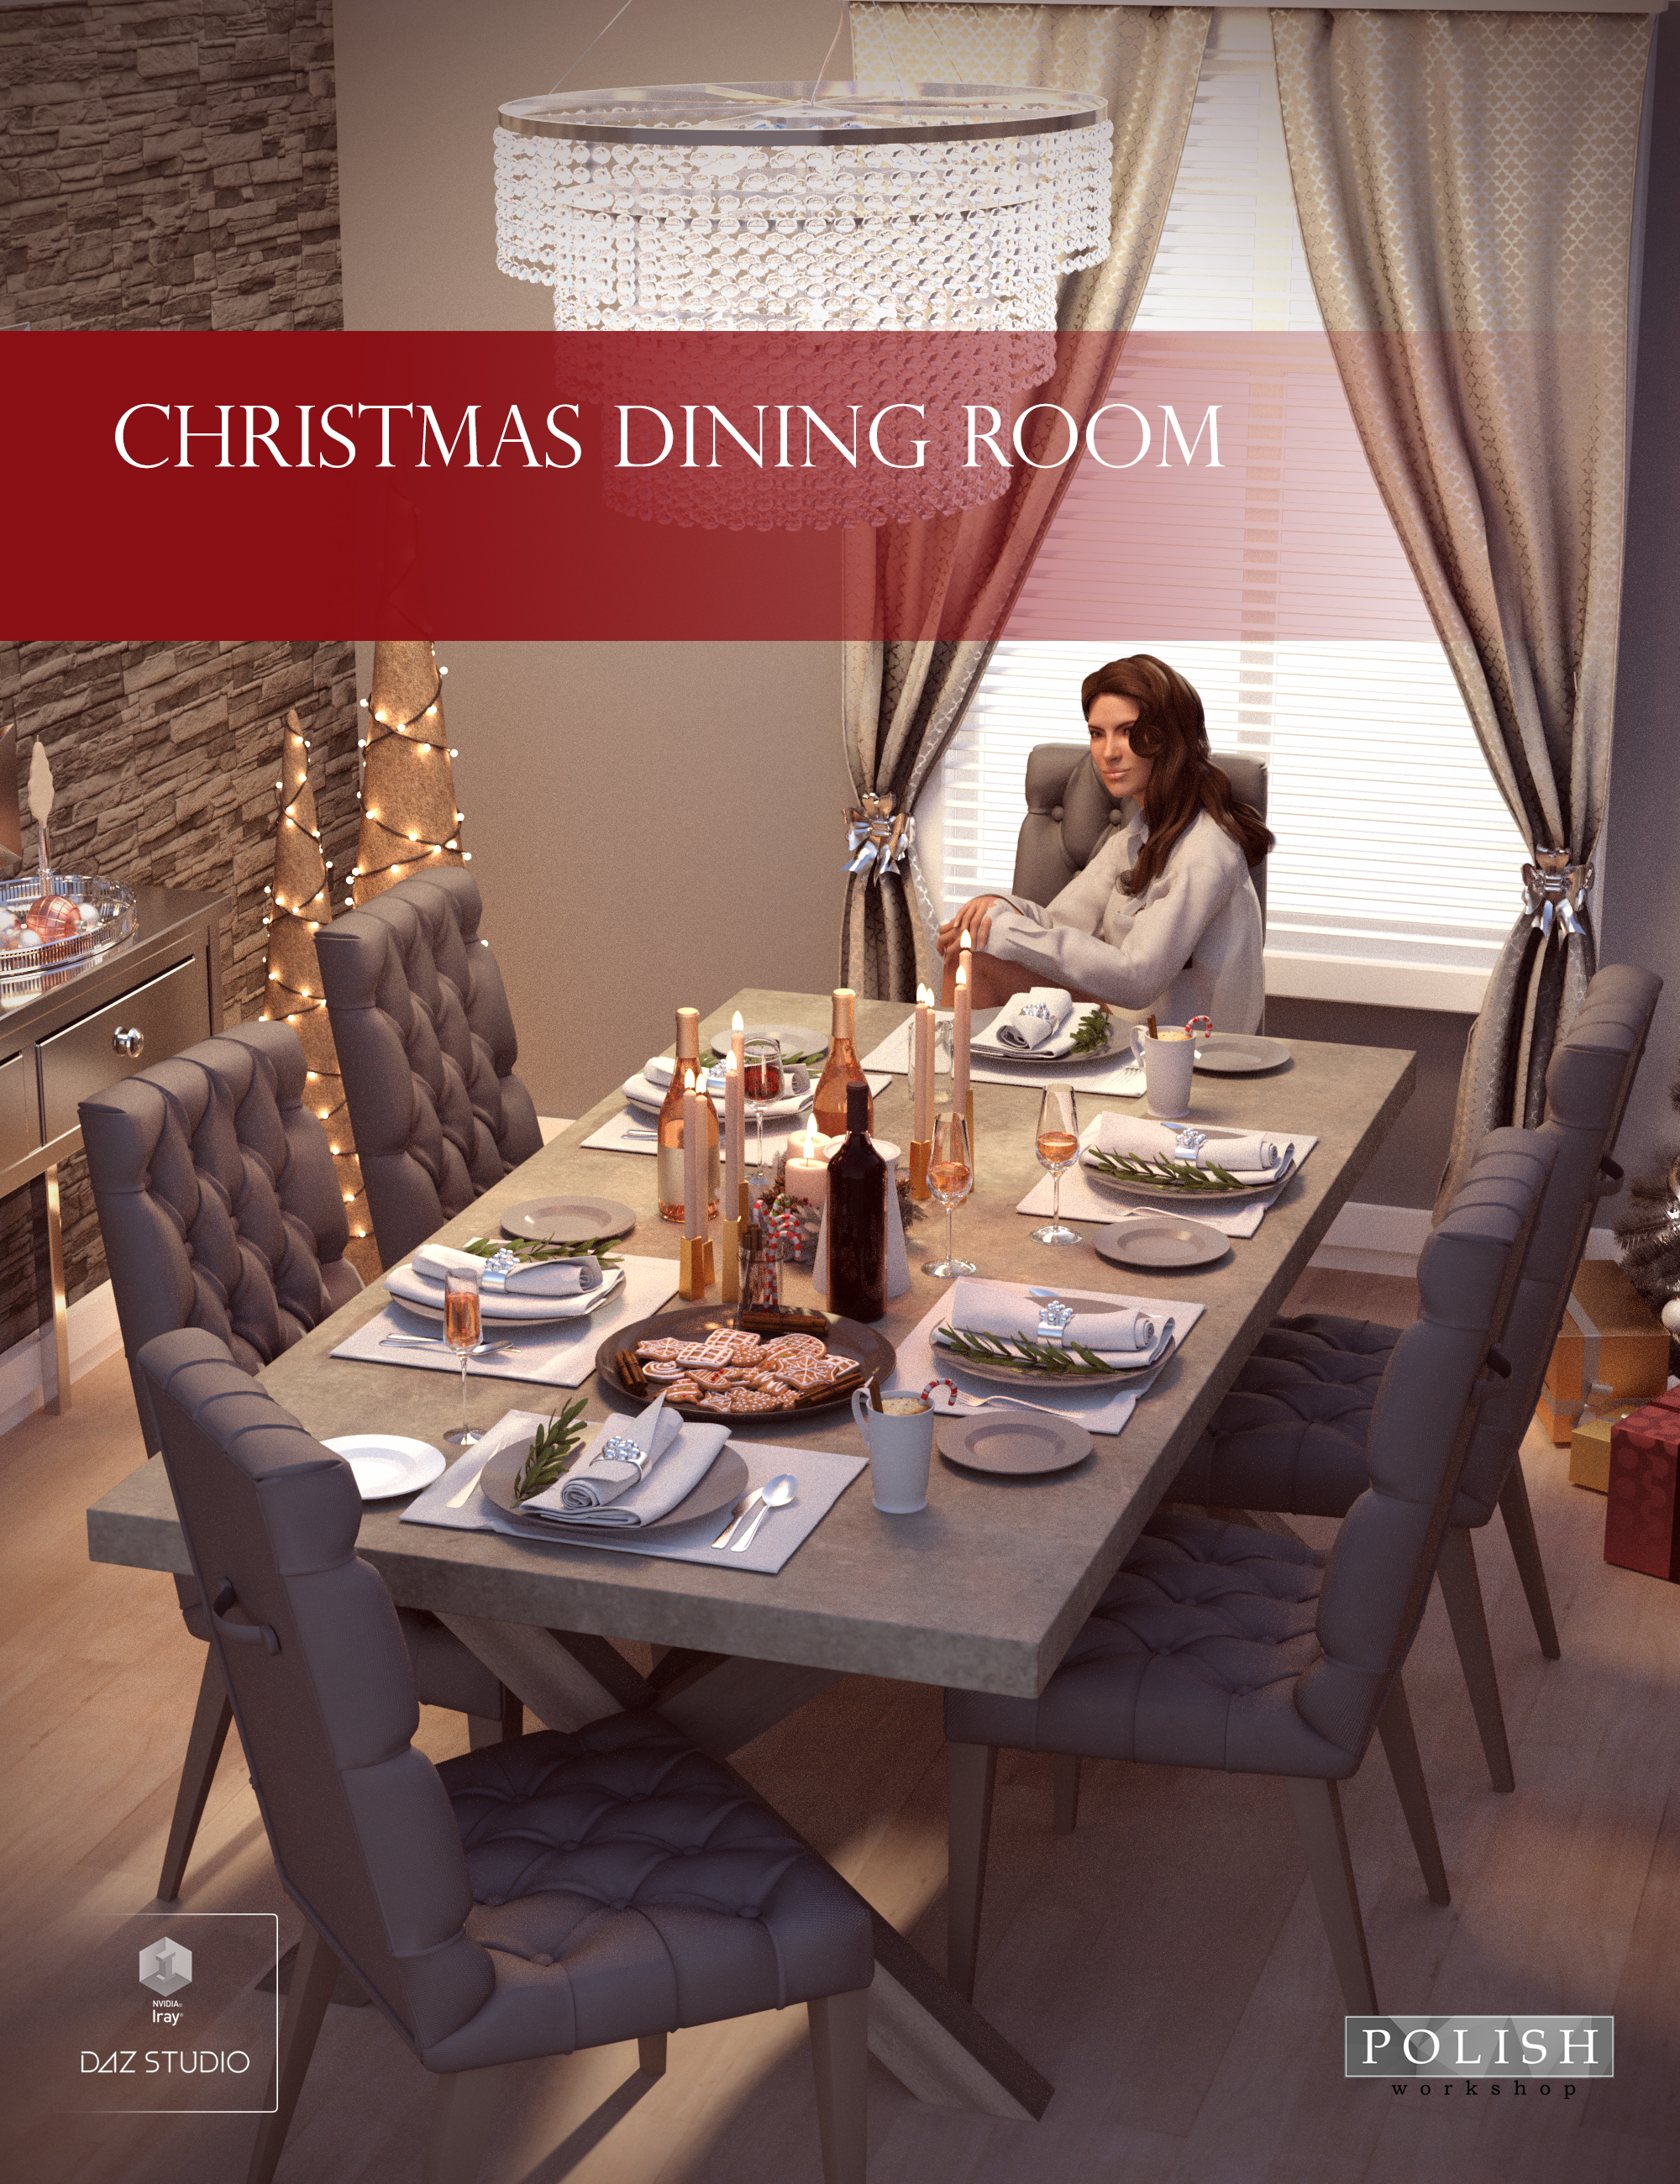 Christmas Dining Room by: Polish, 3D Models by Daz 3D